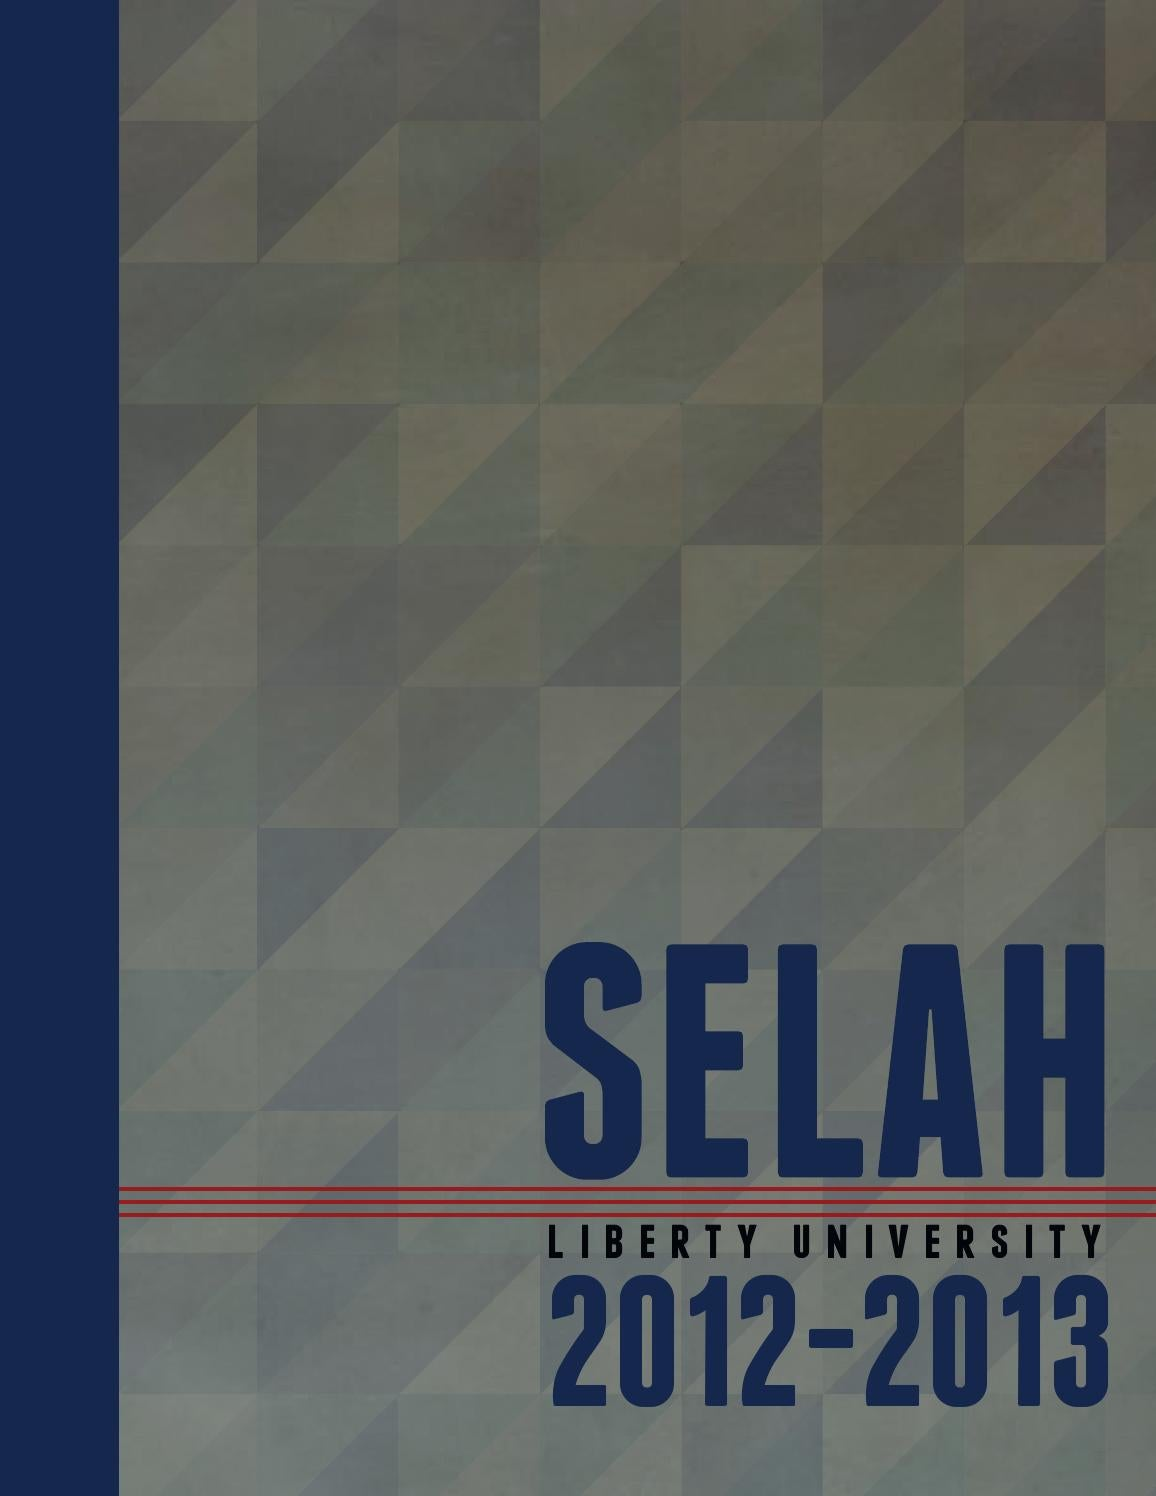 6ac1f2117eda Lu 2013 web by Liberty University - issuu